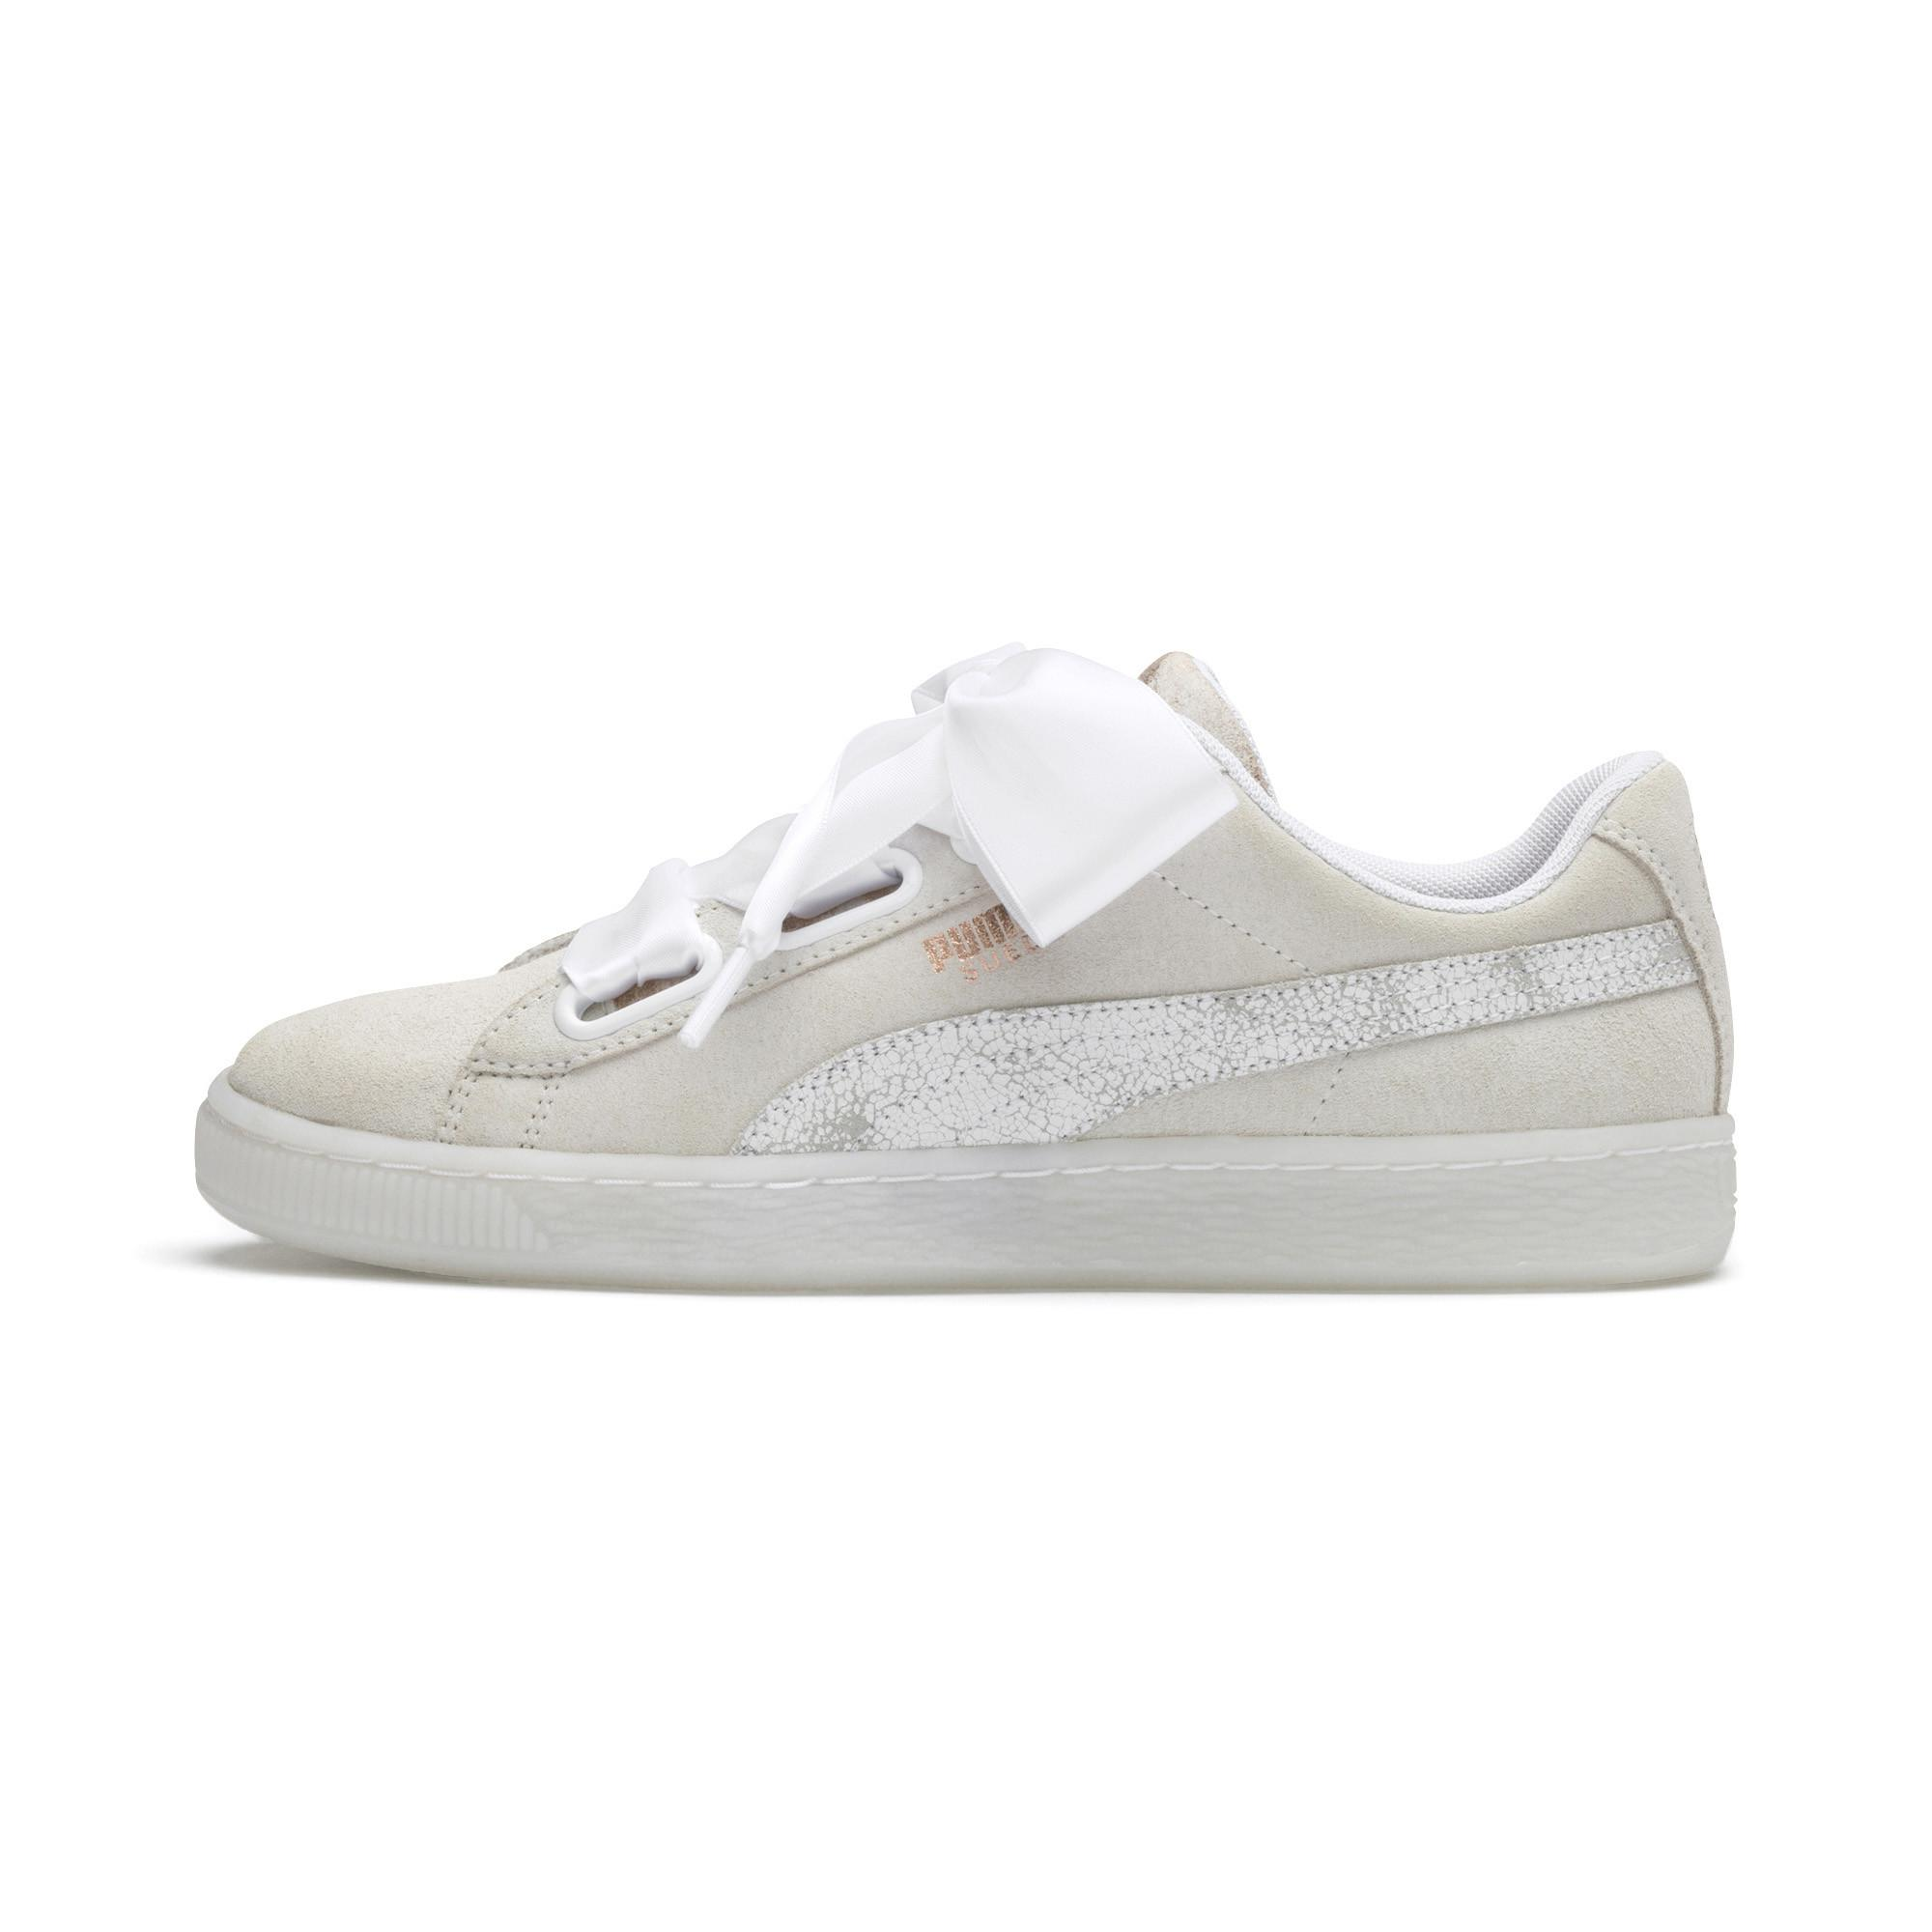 516ab096726 Lyst - PUMA Suede Heart Arctica Women s Sneakers in White - Save 29%